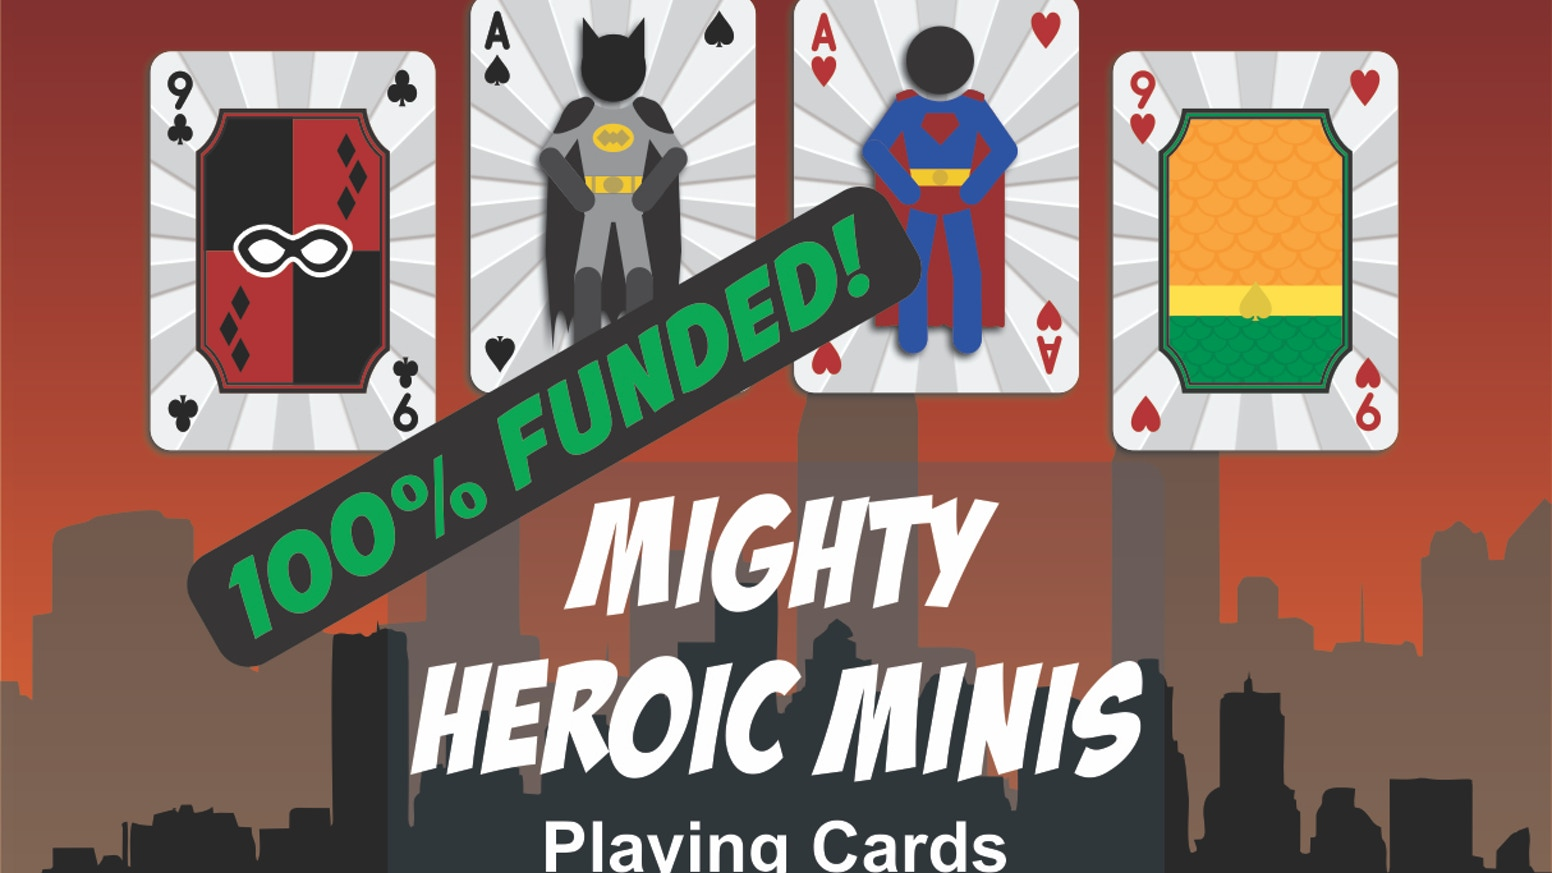 Customized poker deck. Inspired by your favorite heroes. Printed by MPC. Limited production run.